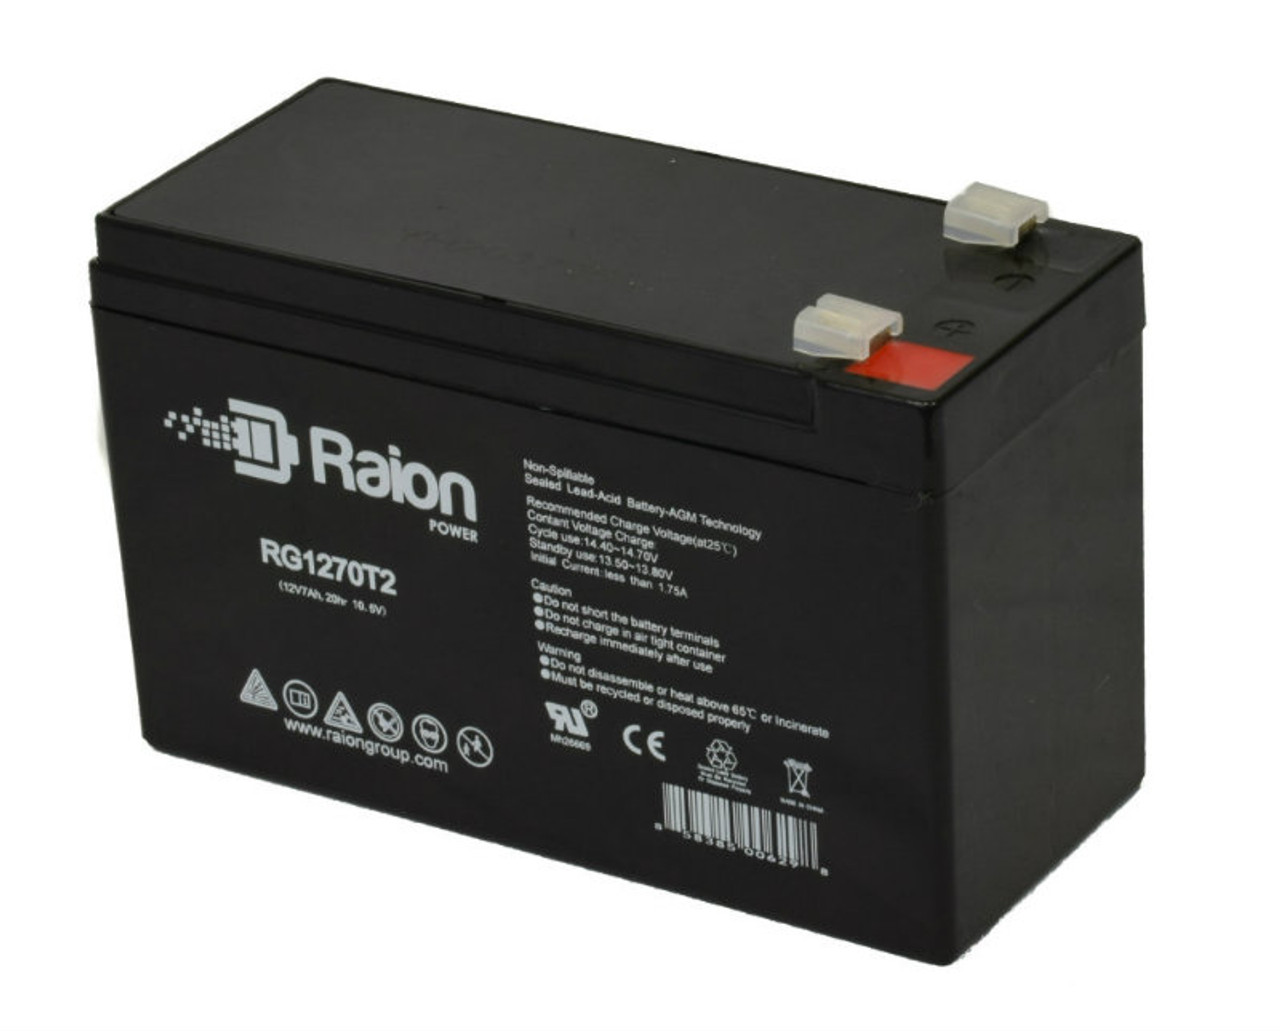 Raion Power RG1270T1 Replacement Battery for Alexander PS1270